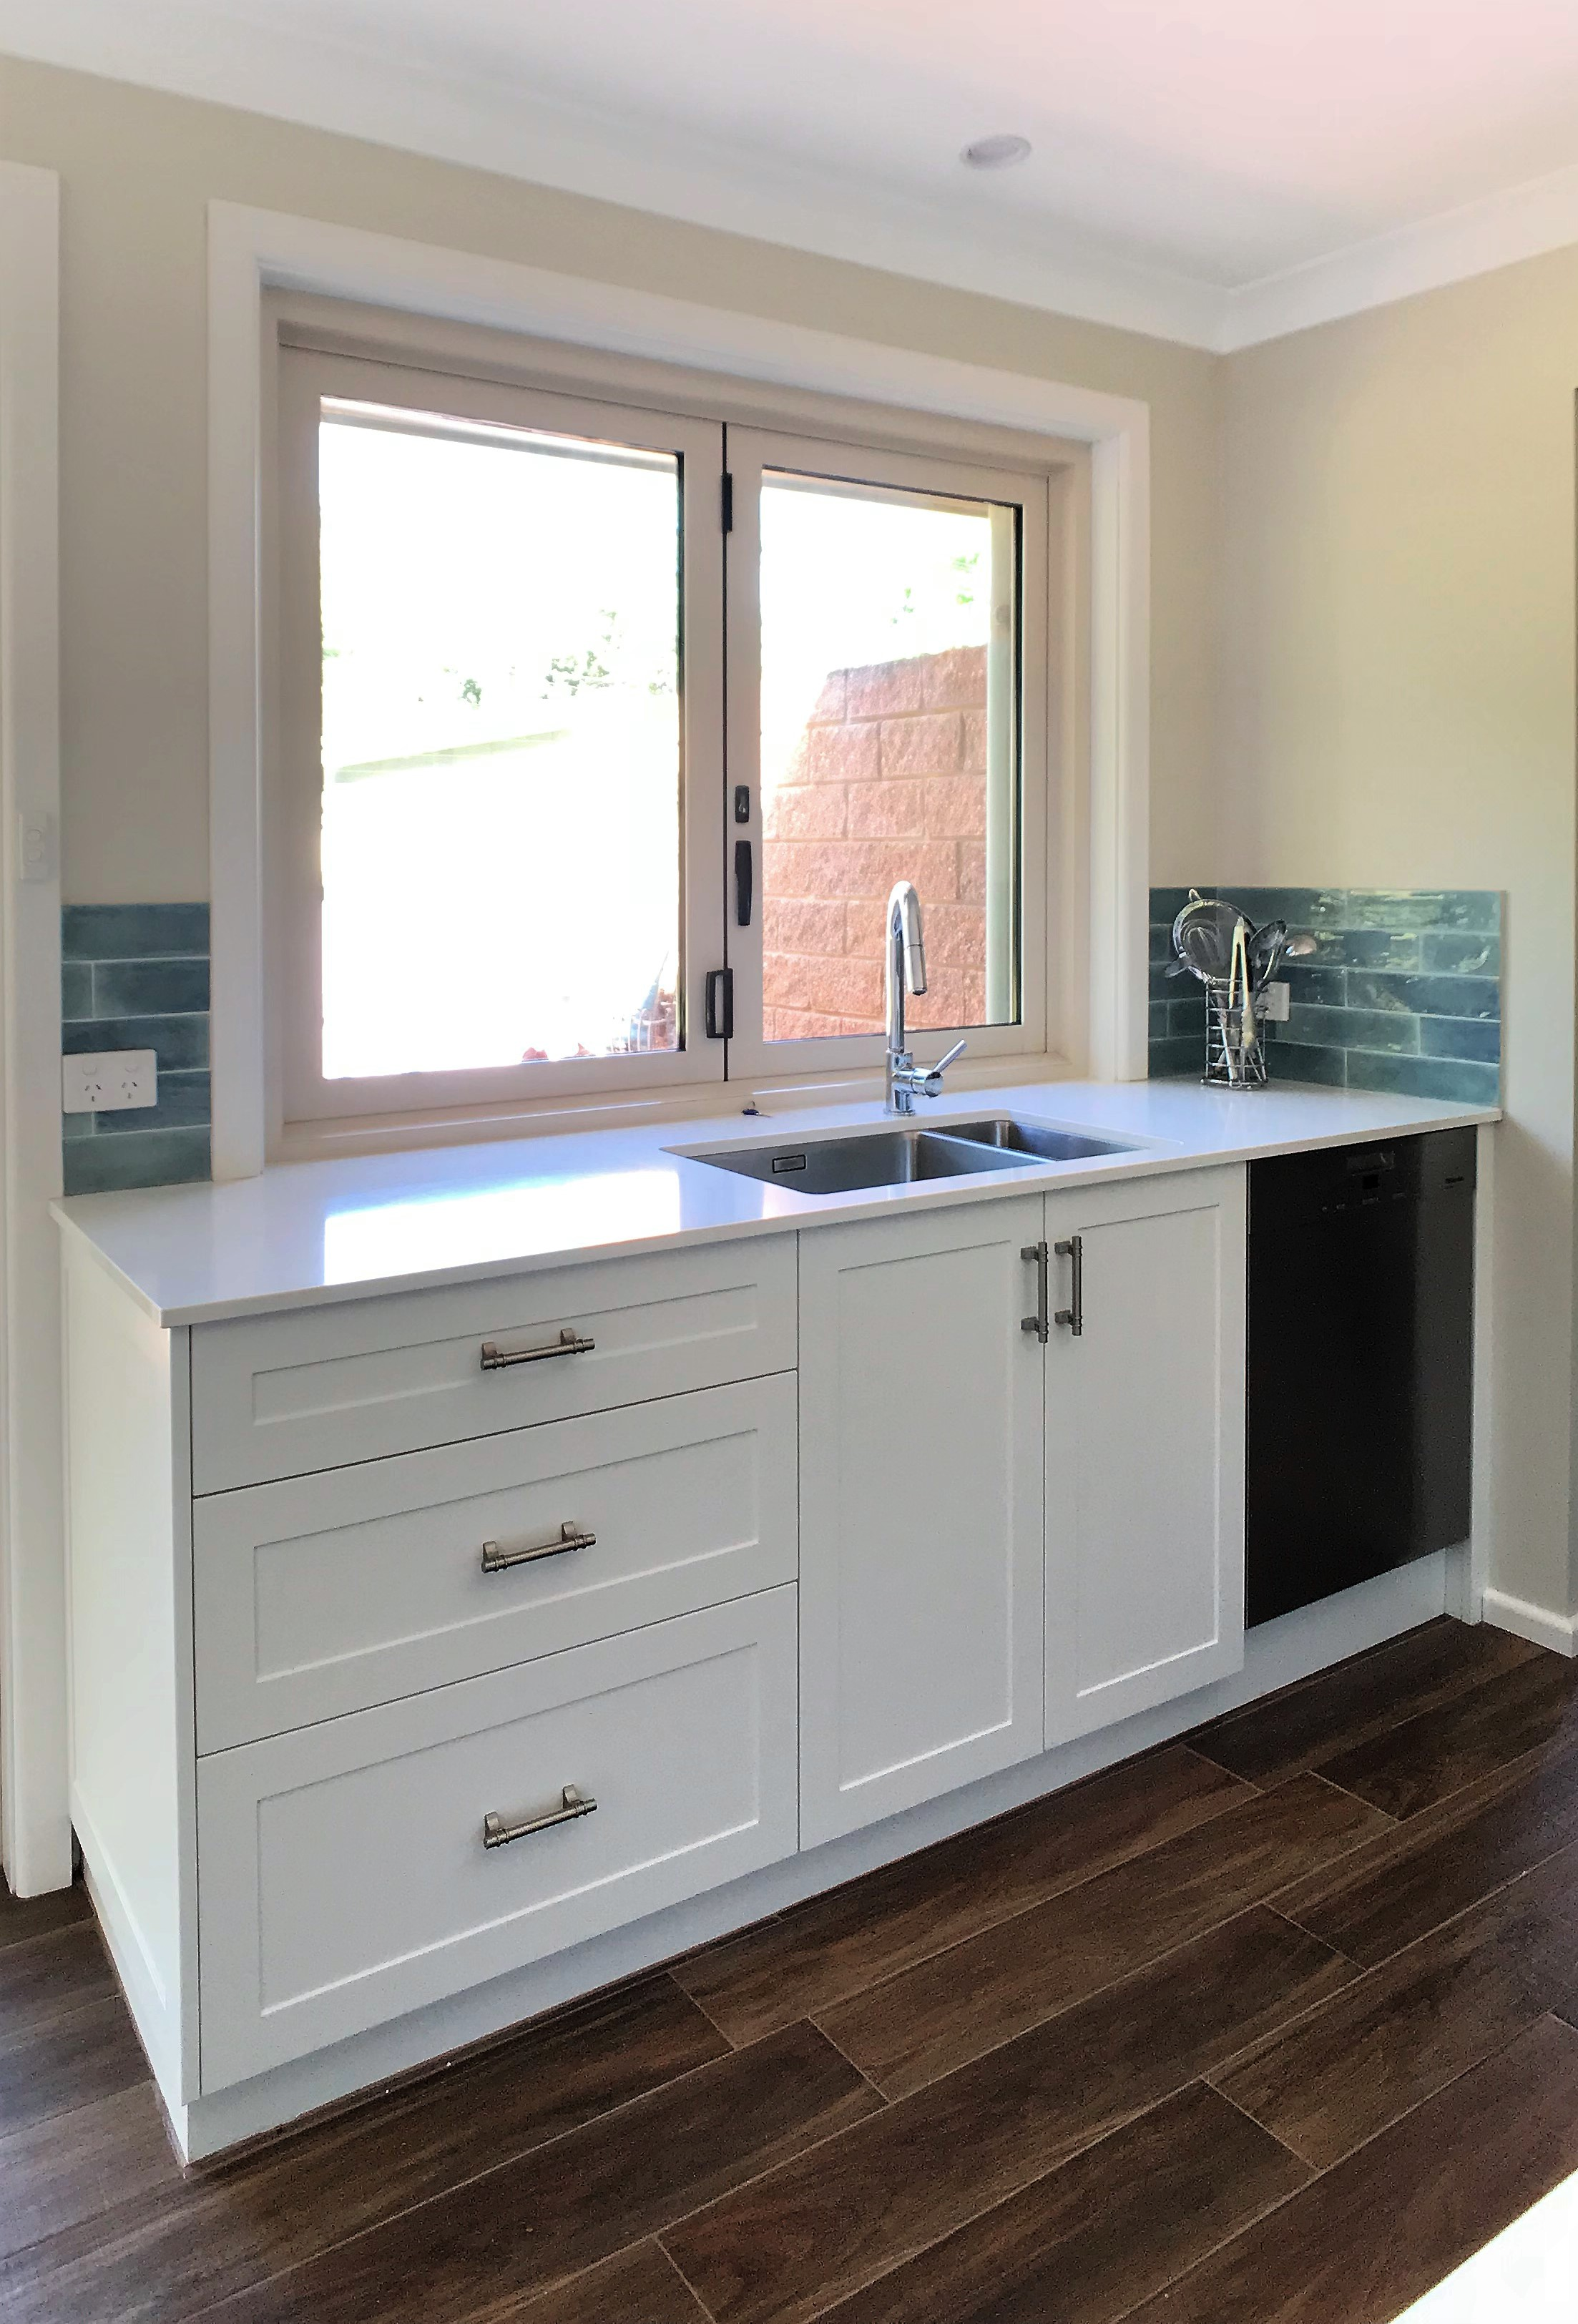 White color benchtop with sink for washing utensils.